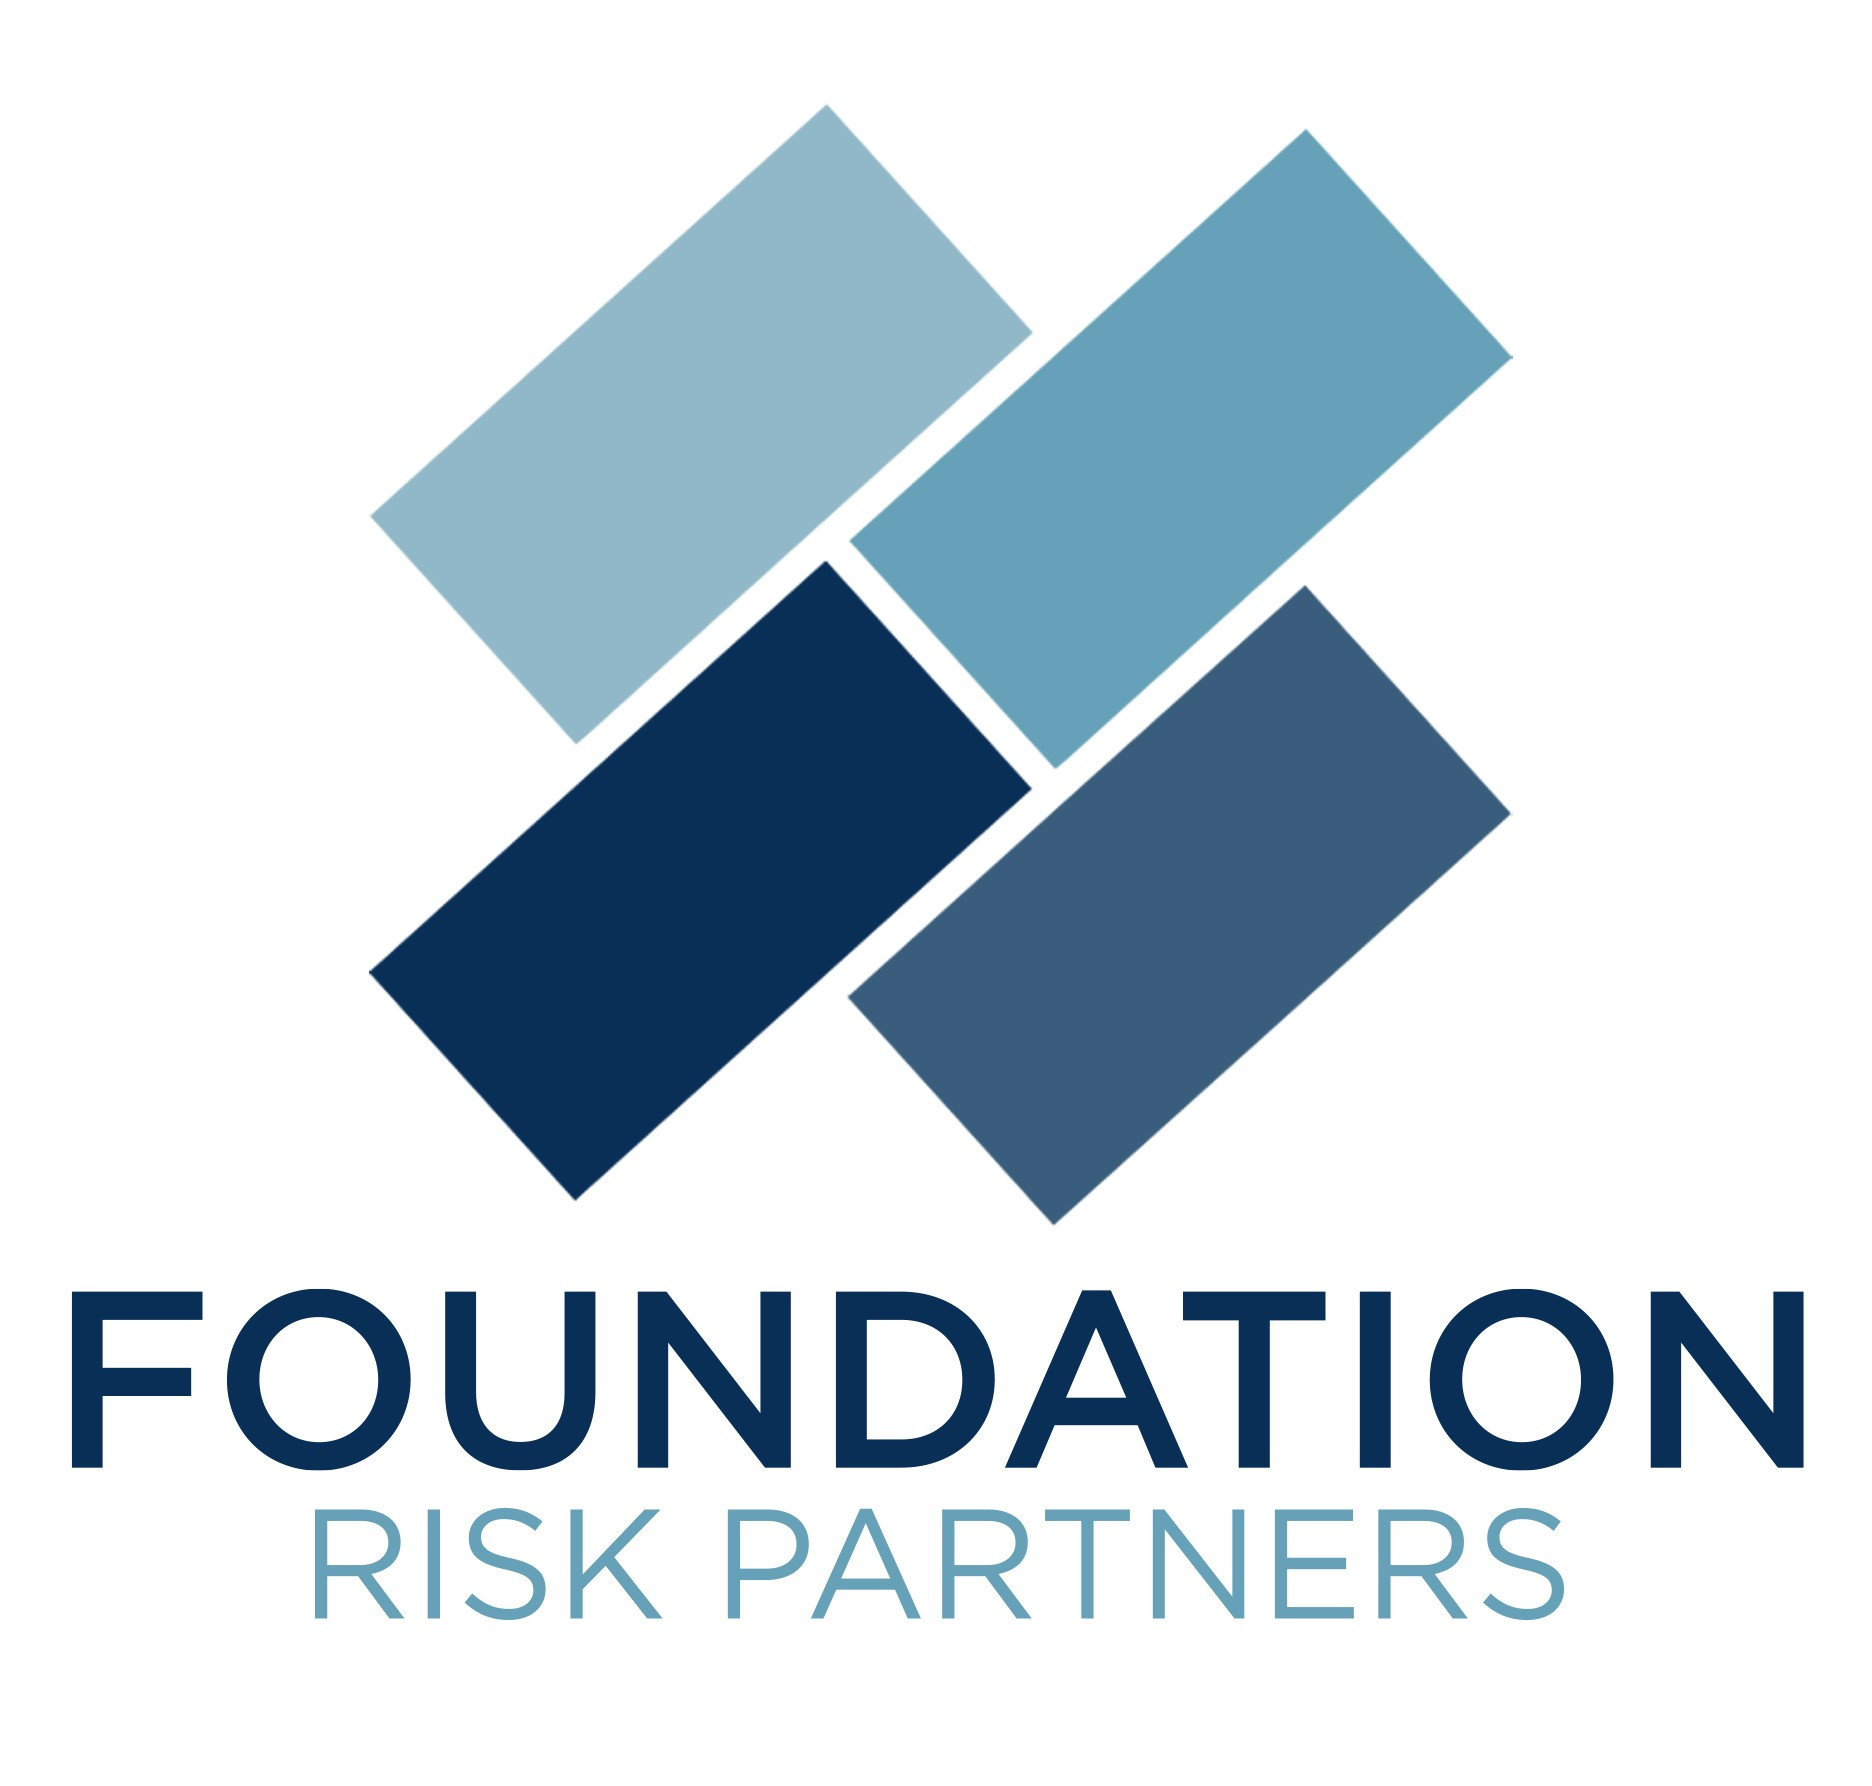 Foundation Risk Partners